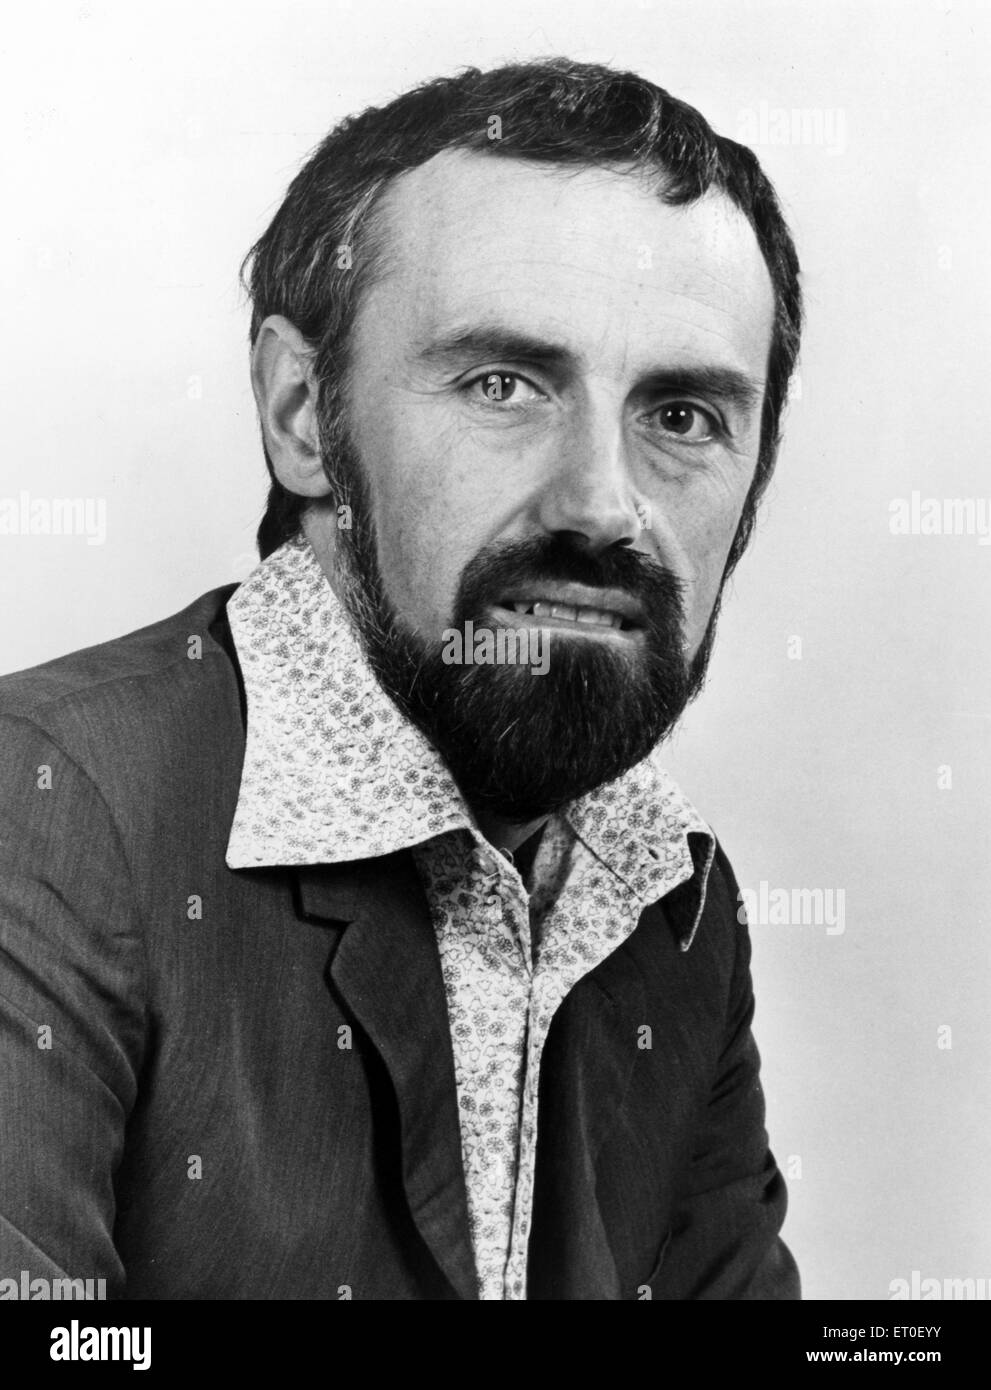 John Russell, BRMB Radio, Programme Director, 11th February 1979. - Stock Image